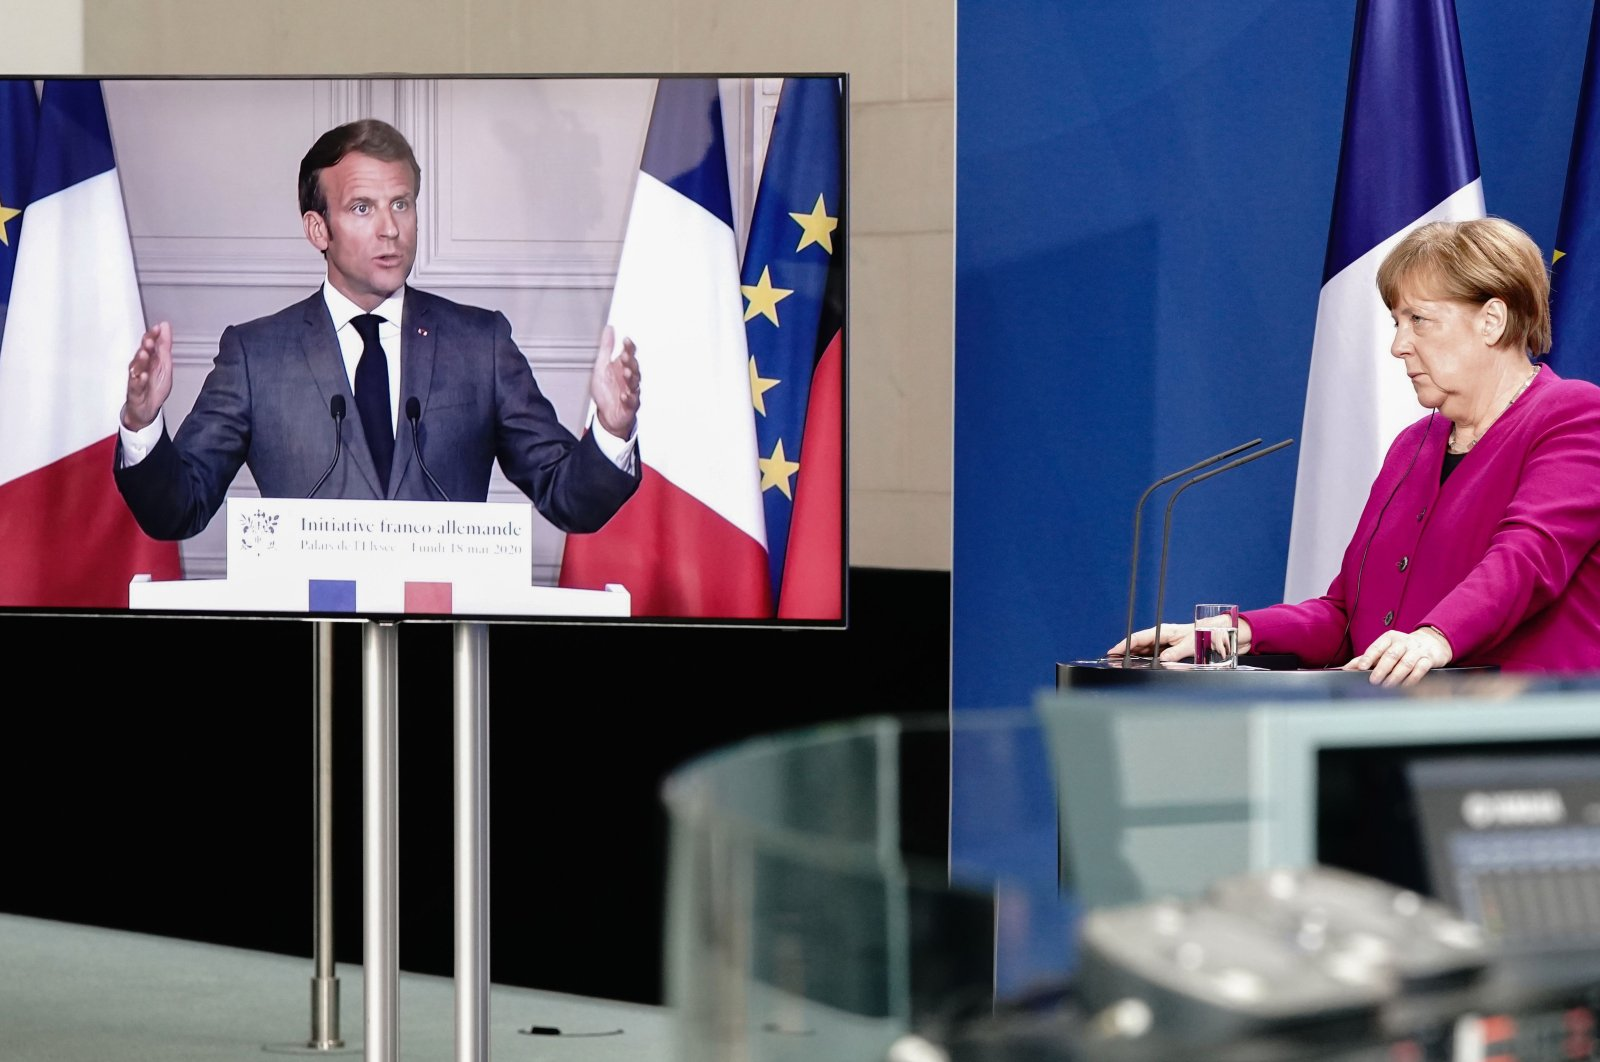 German Chancellor Angela Merkel listens during a joint press conference with French President Emmanuel Macron at the Chancellery, Berlin, May 18, 2020. (AFP Photo)